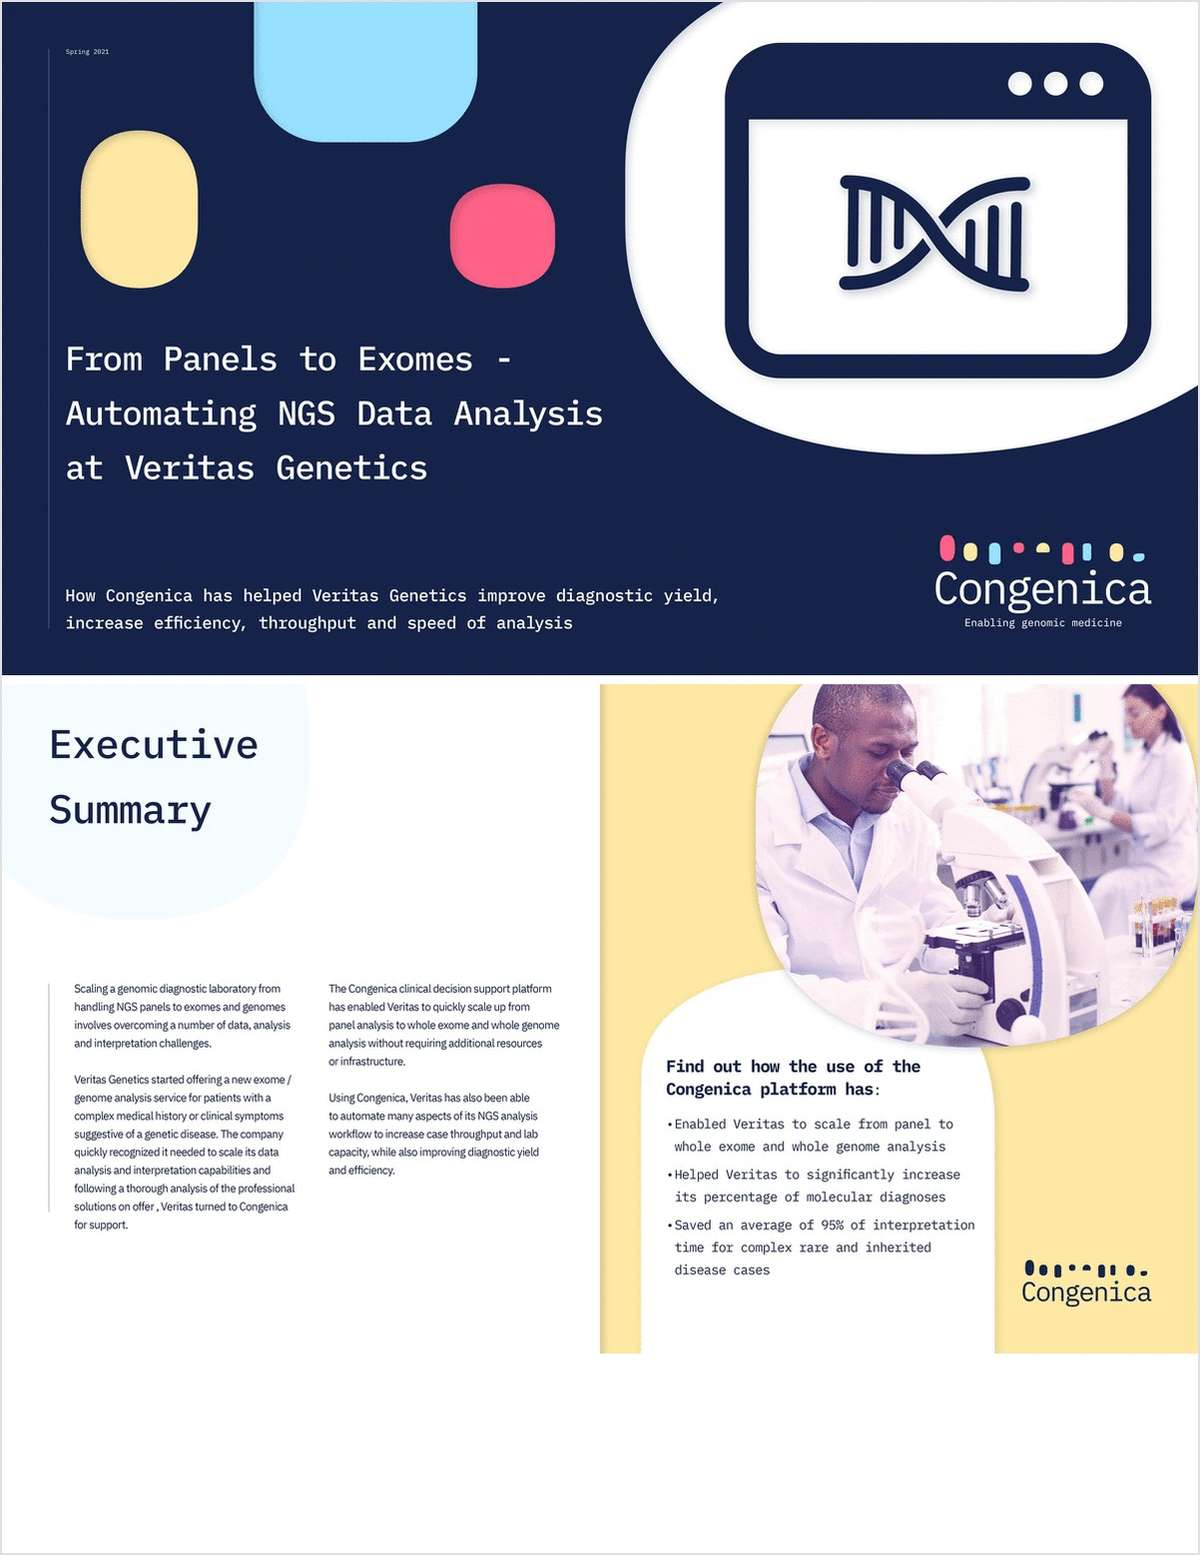 From Panels to Exomes - Automating NGS Data Analysis at Veritas Genetics